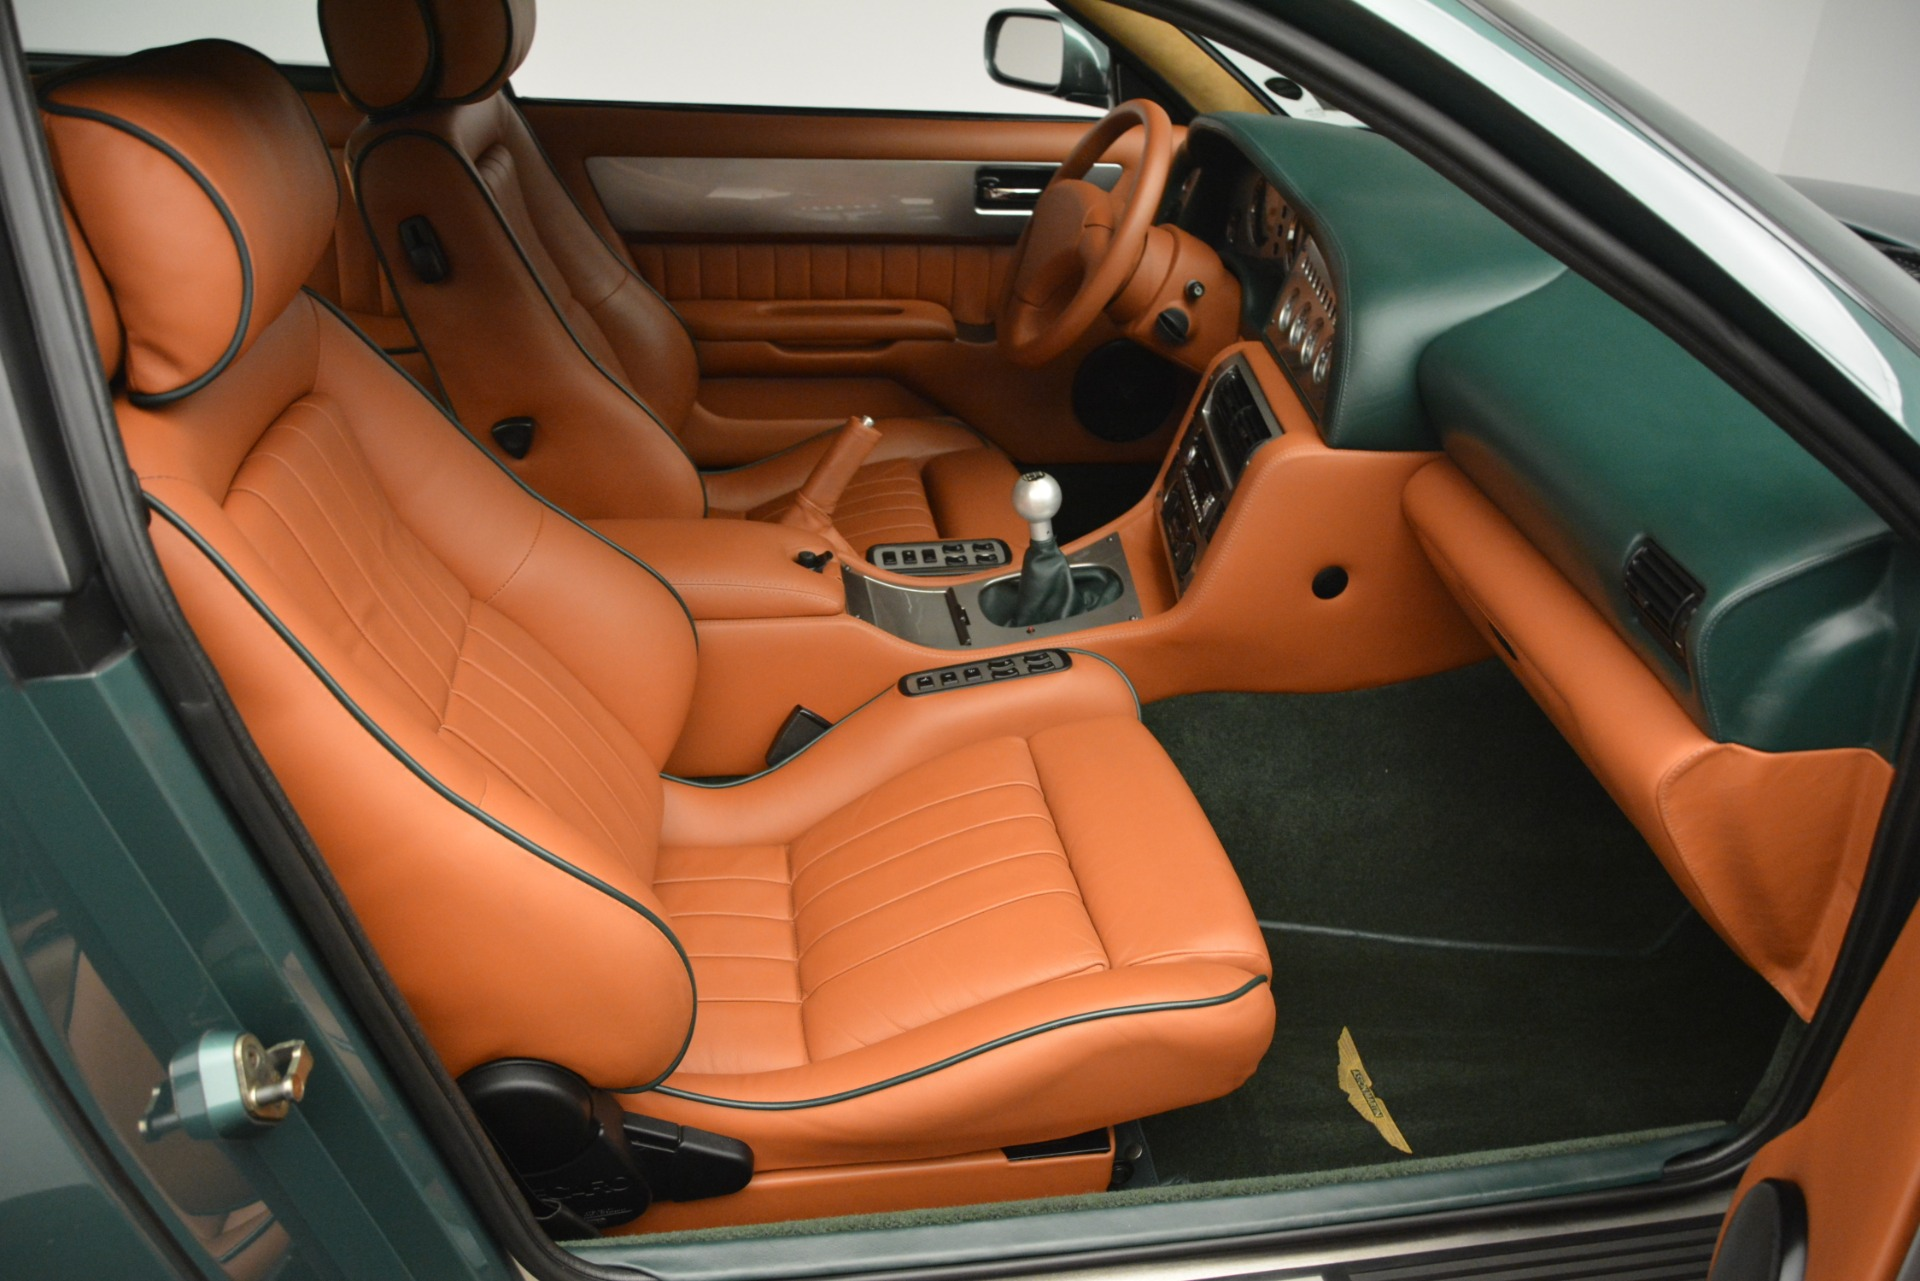 Used 1999 Aston Martin V8 Vantage Le Mans V600 Coupe For Sale In Westport, CT 2789_p26